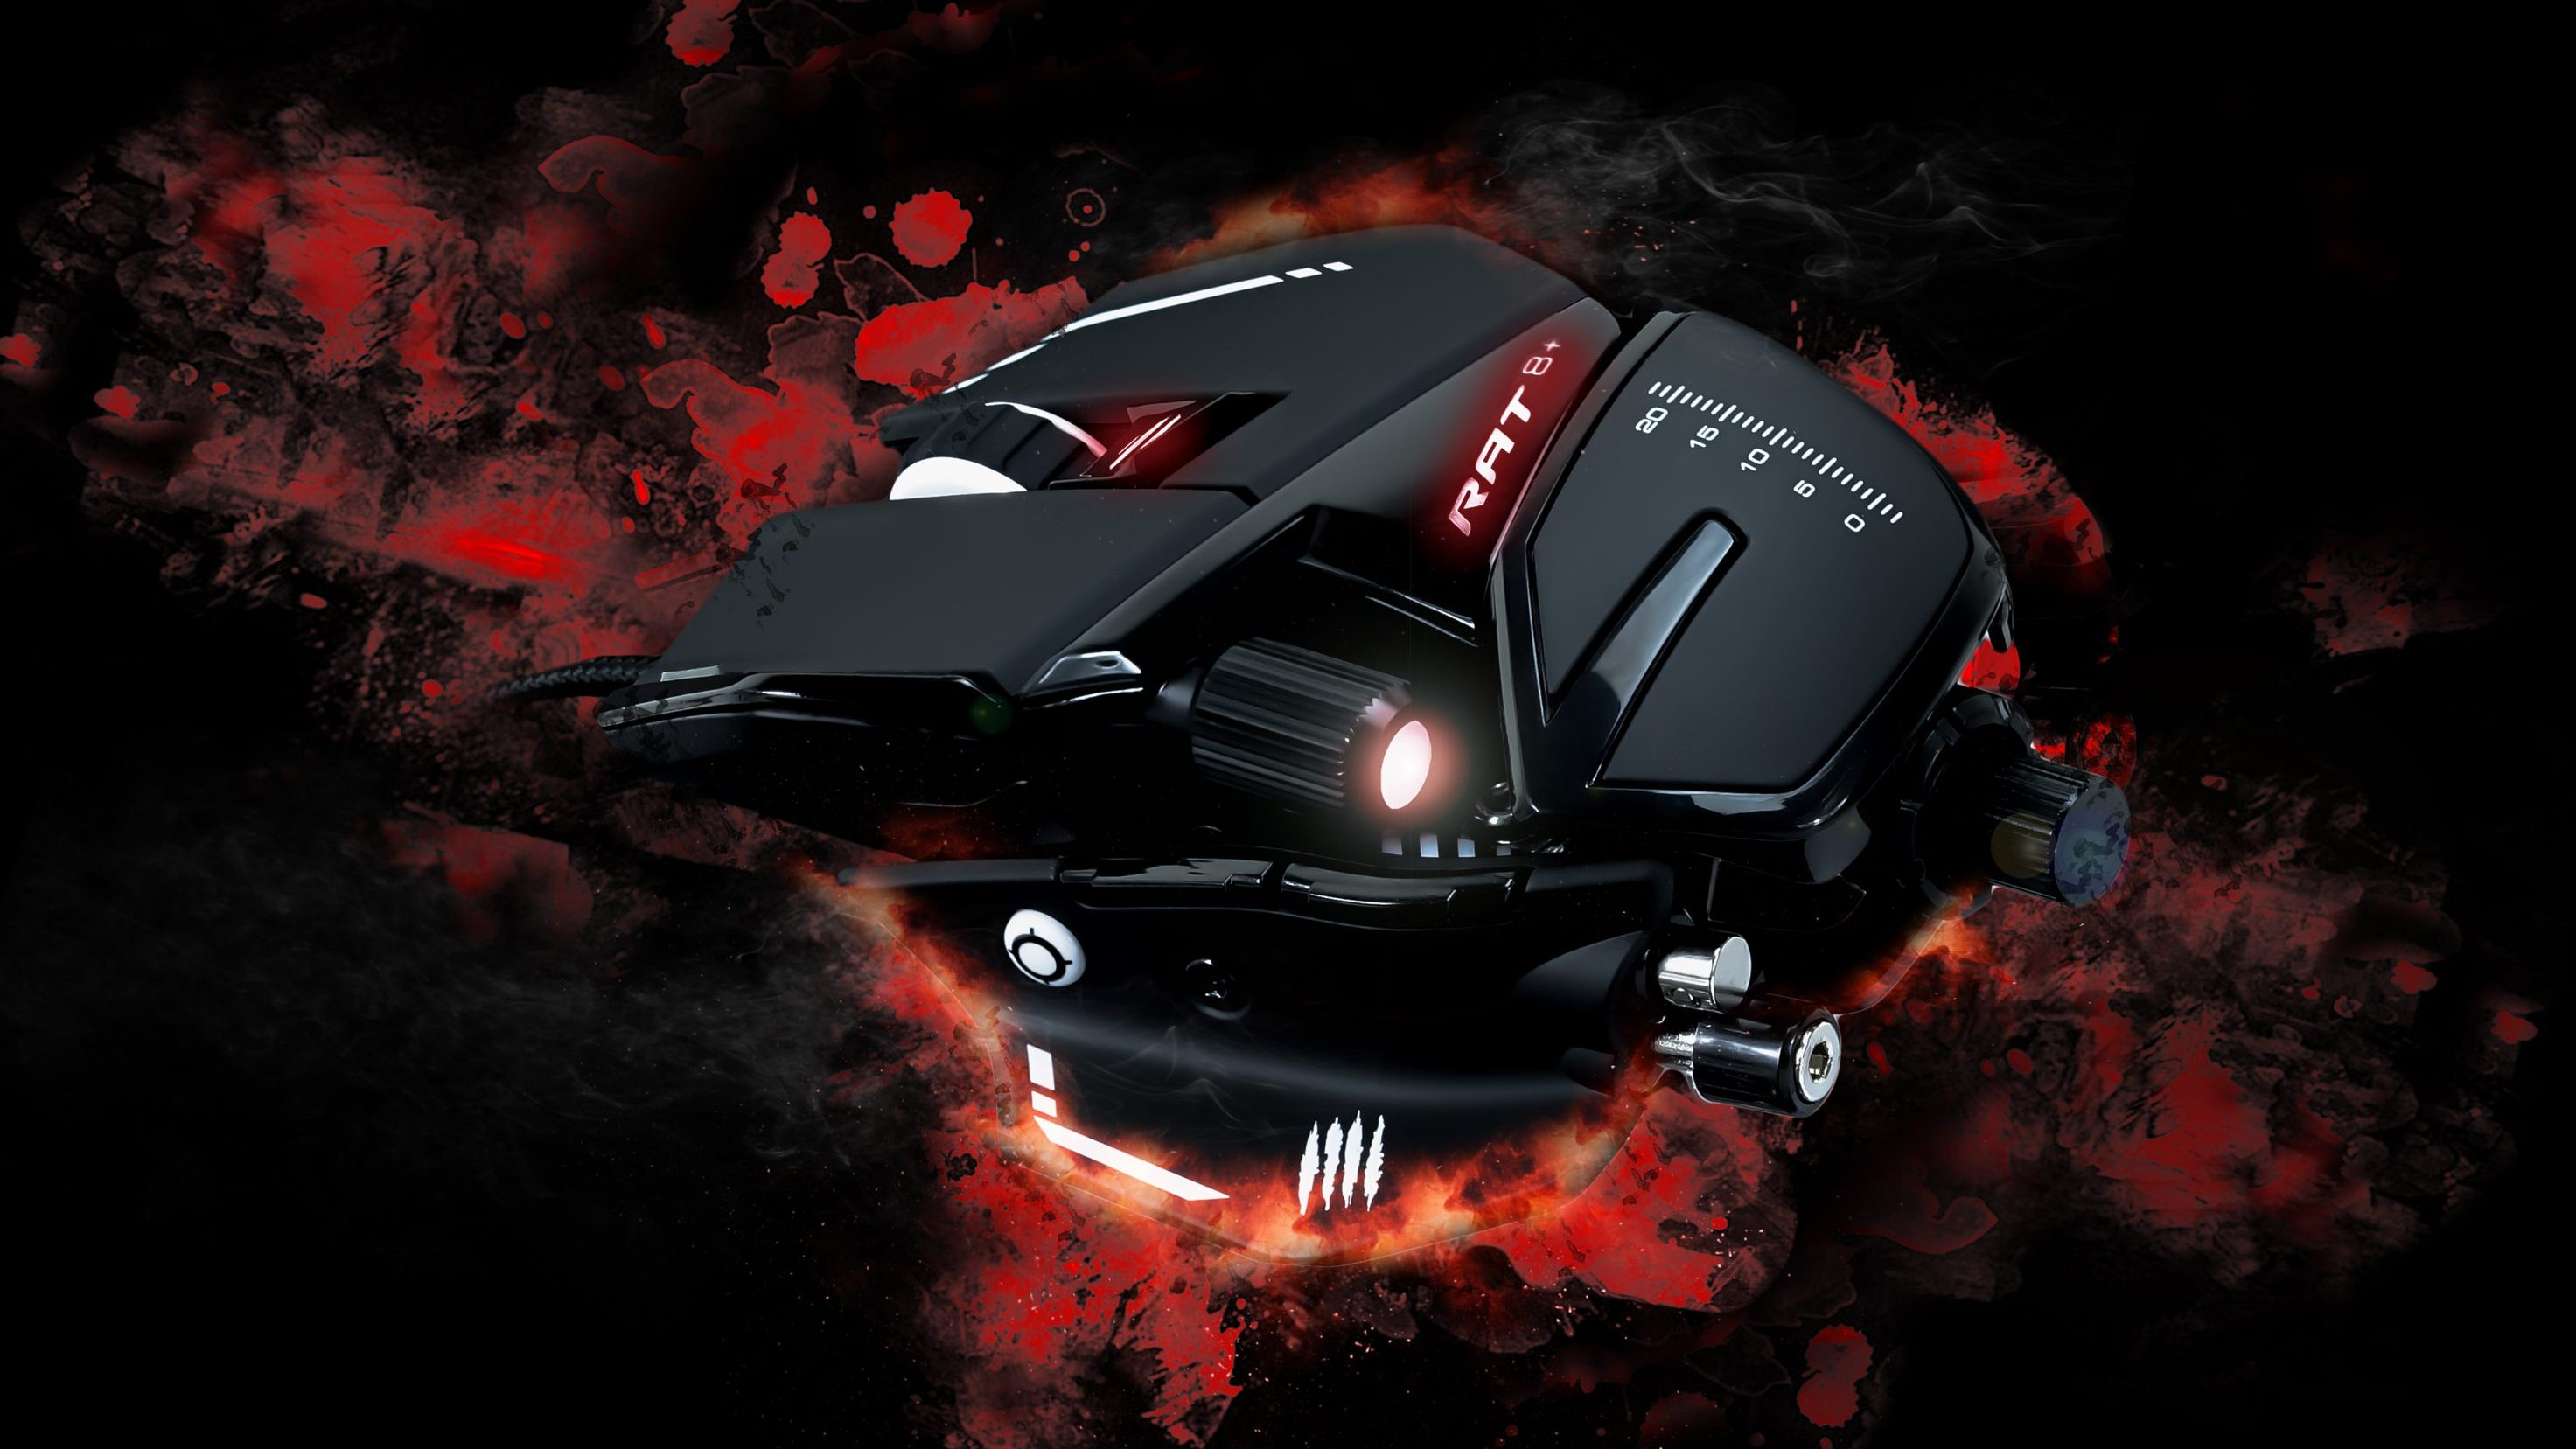 MAD CATZ resurrects with a new line of RAT mouses